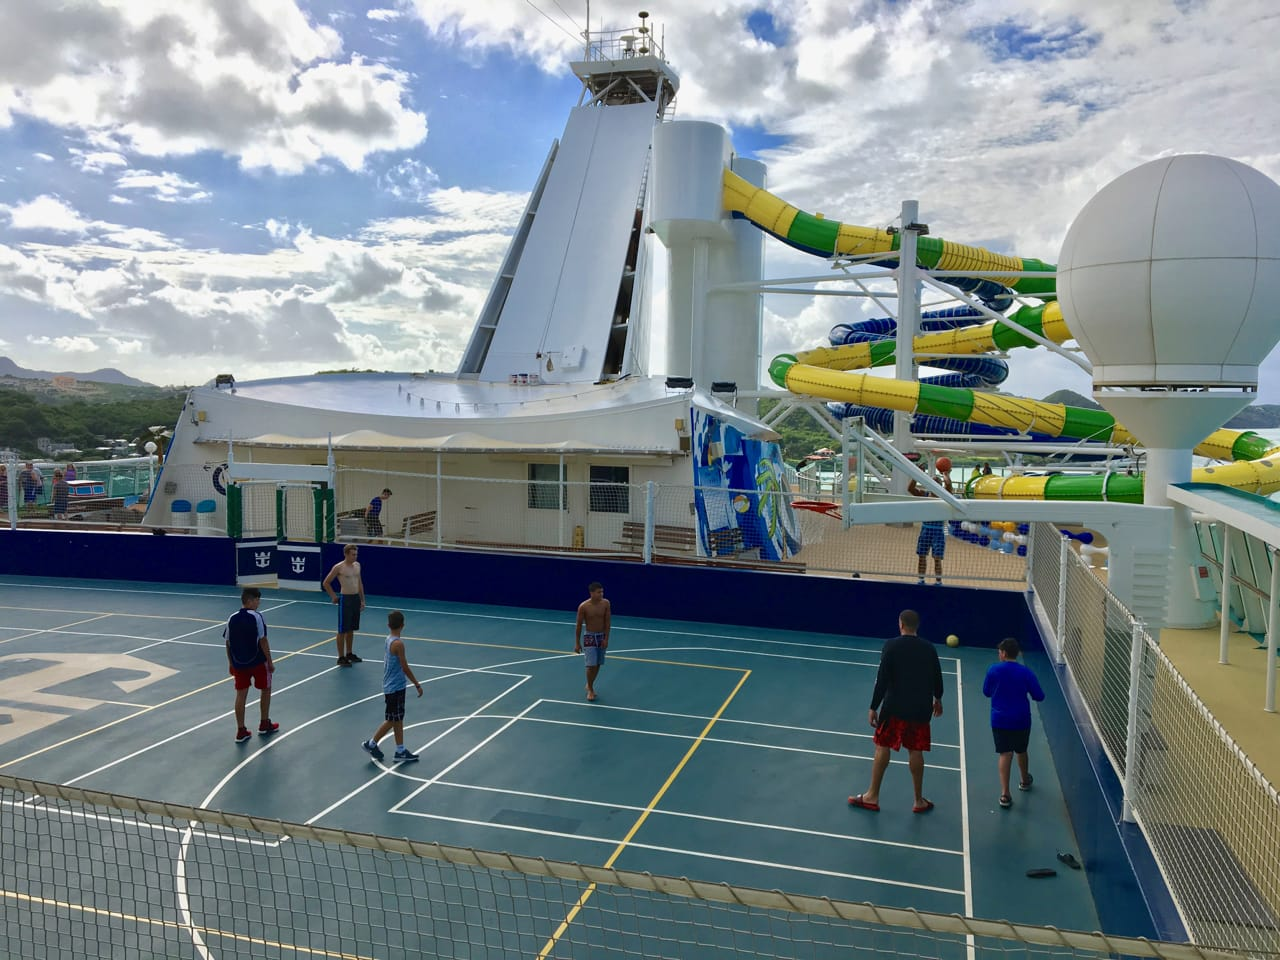 Hit the basketball court to stay active while cruising!